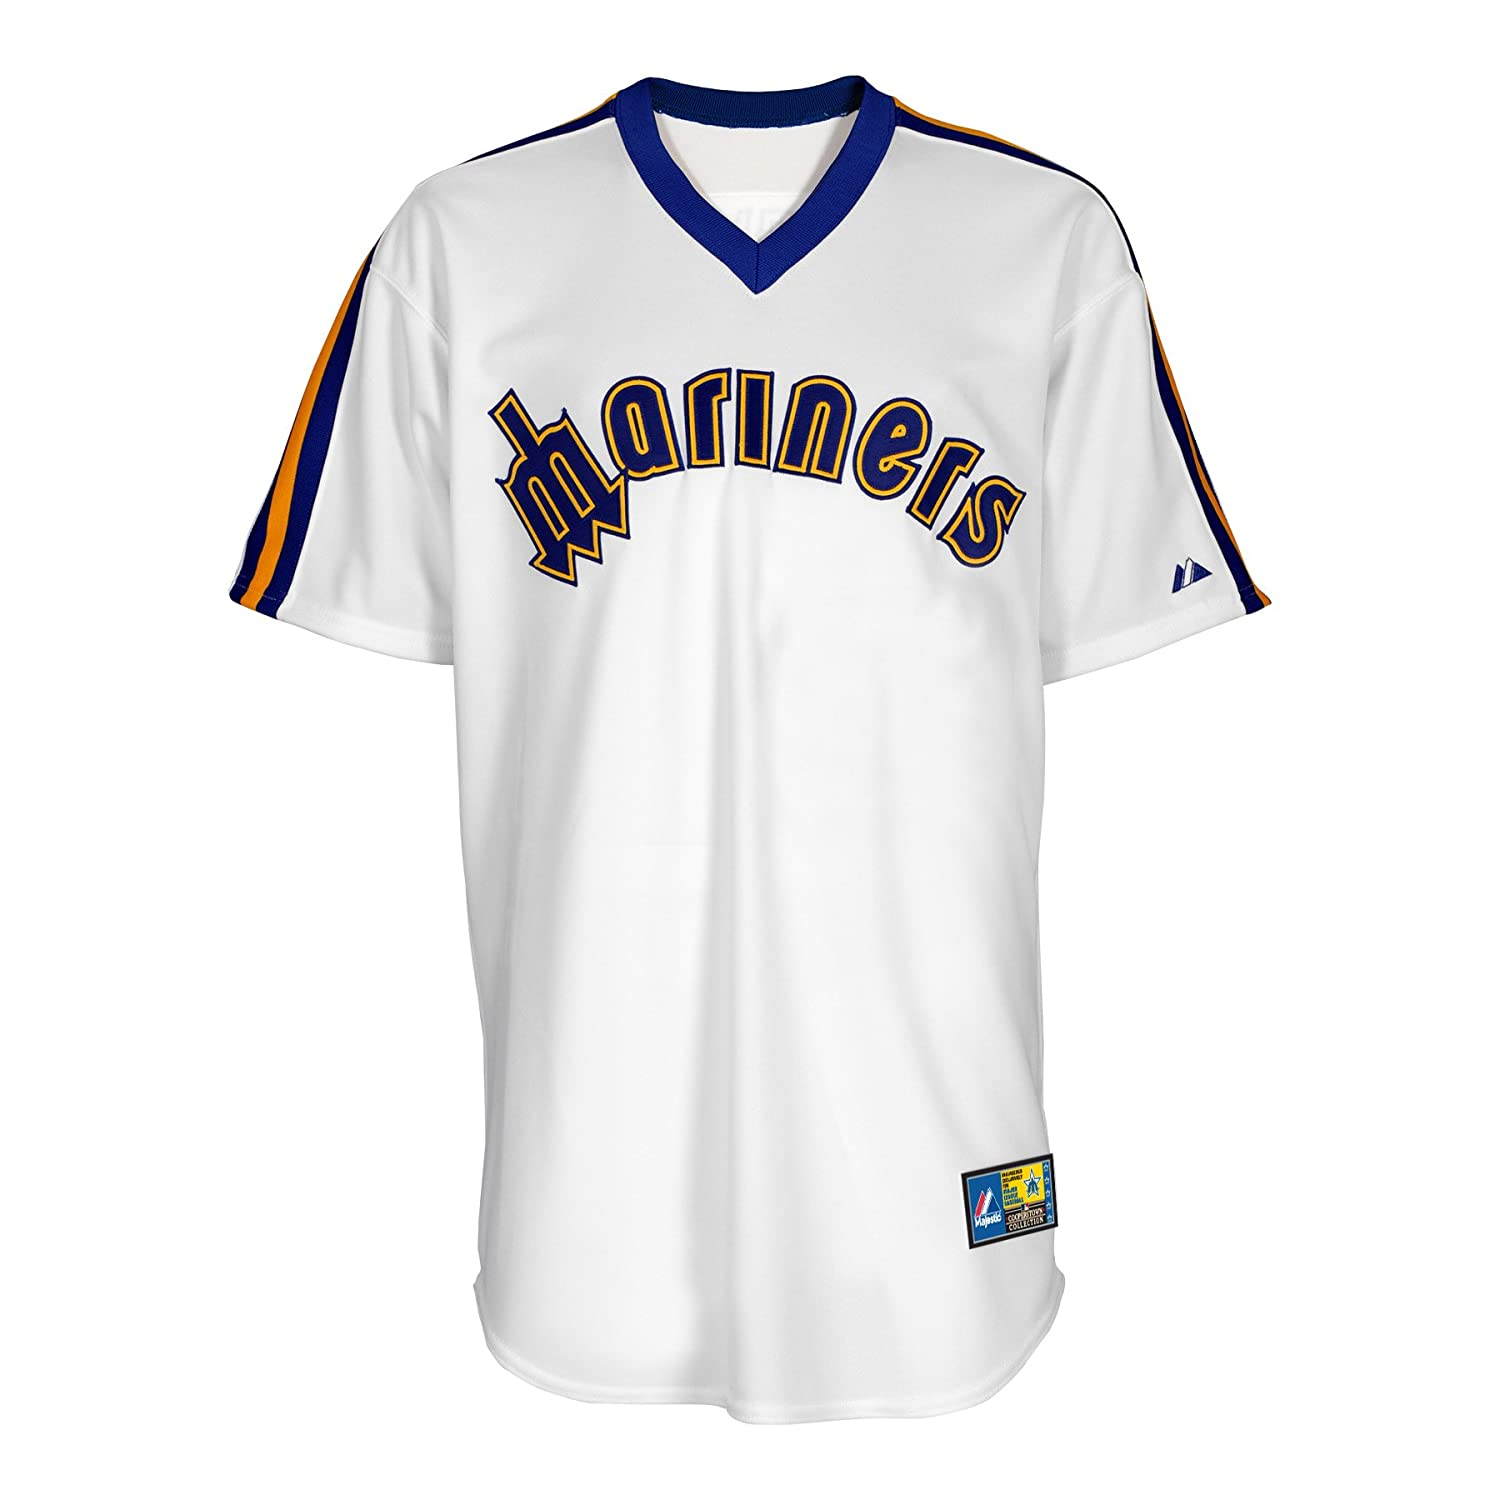 info for 2f255 12786 Amazon.com : MLB Seattle Mariners 1981-1985 Cooperstown ...